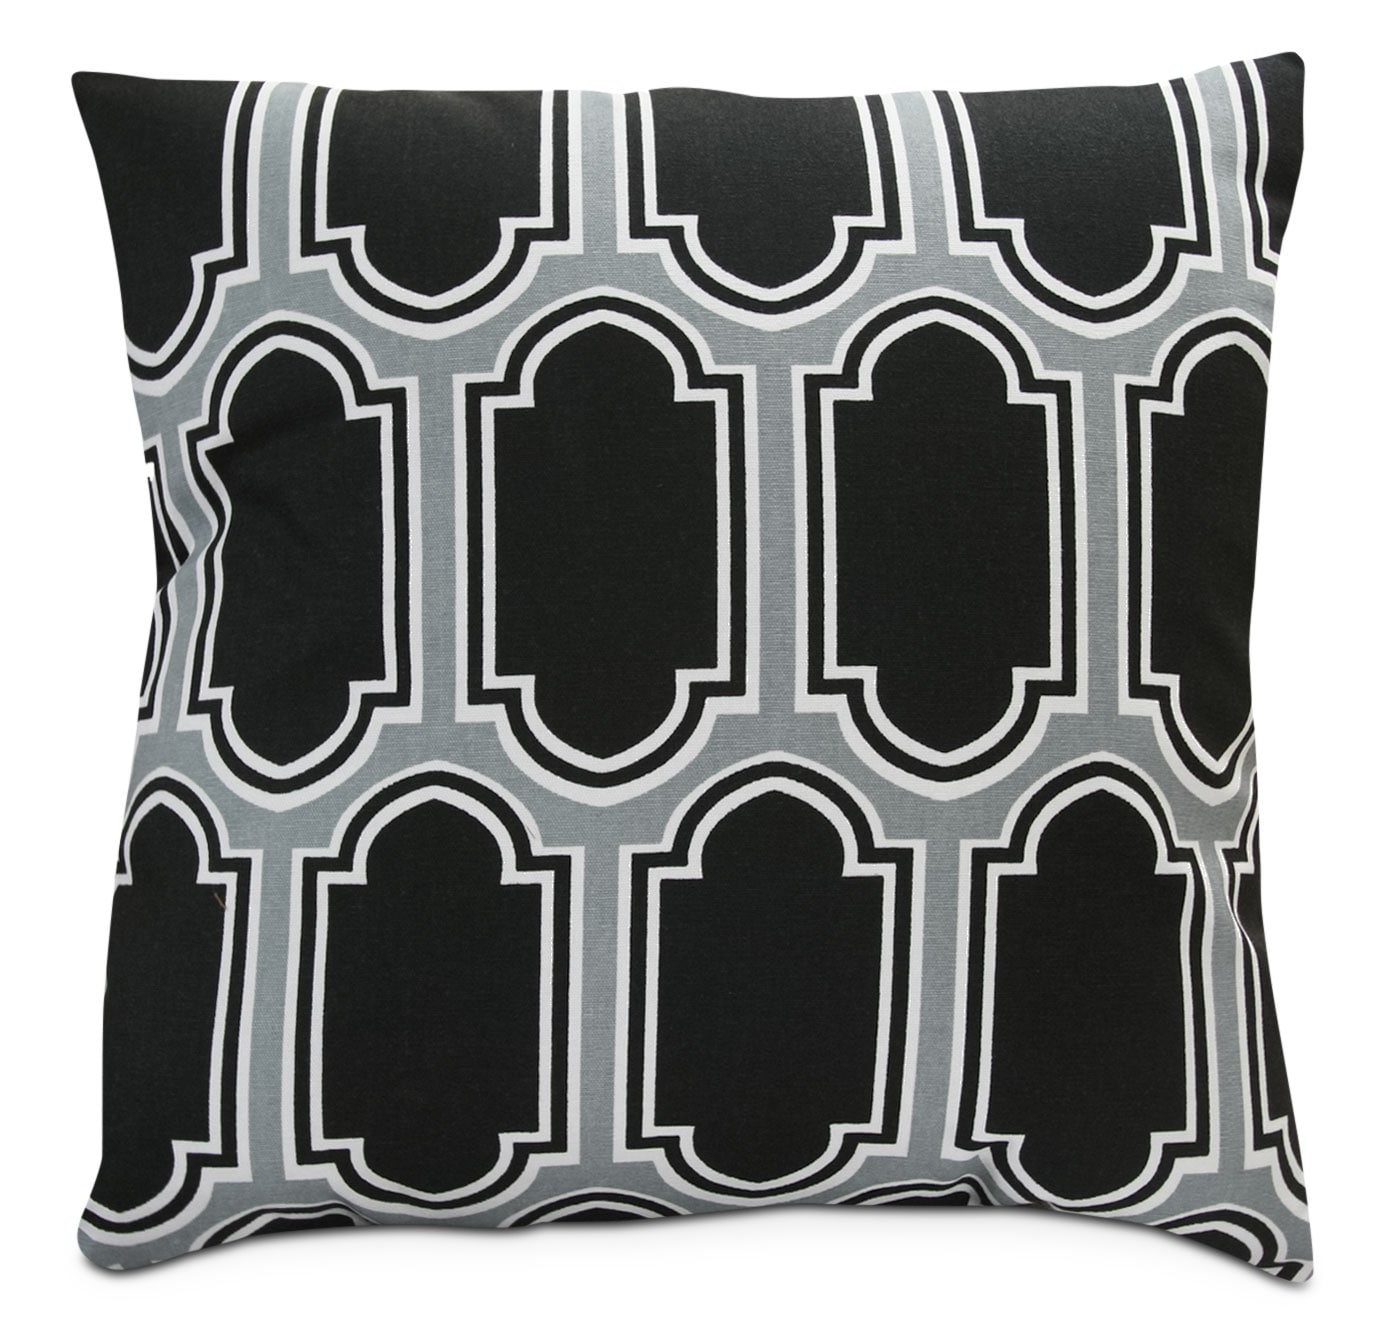 Black Ladder Accent Pillow